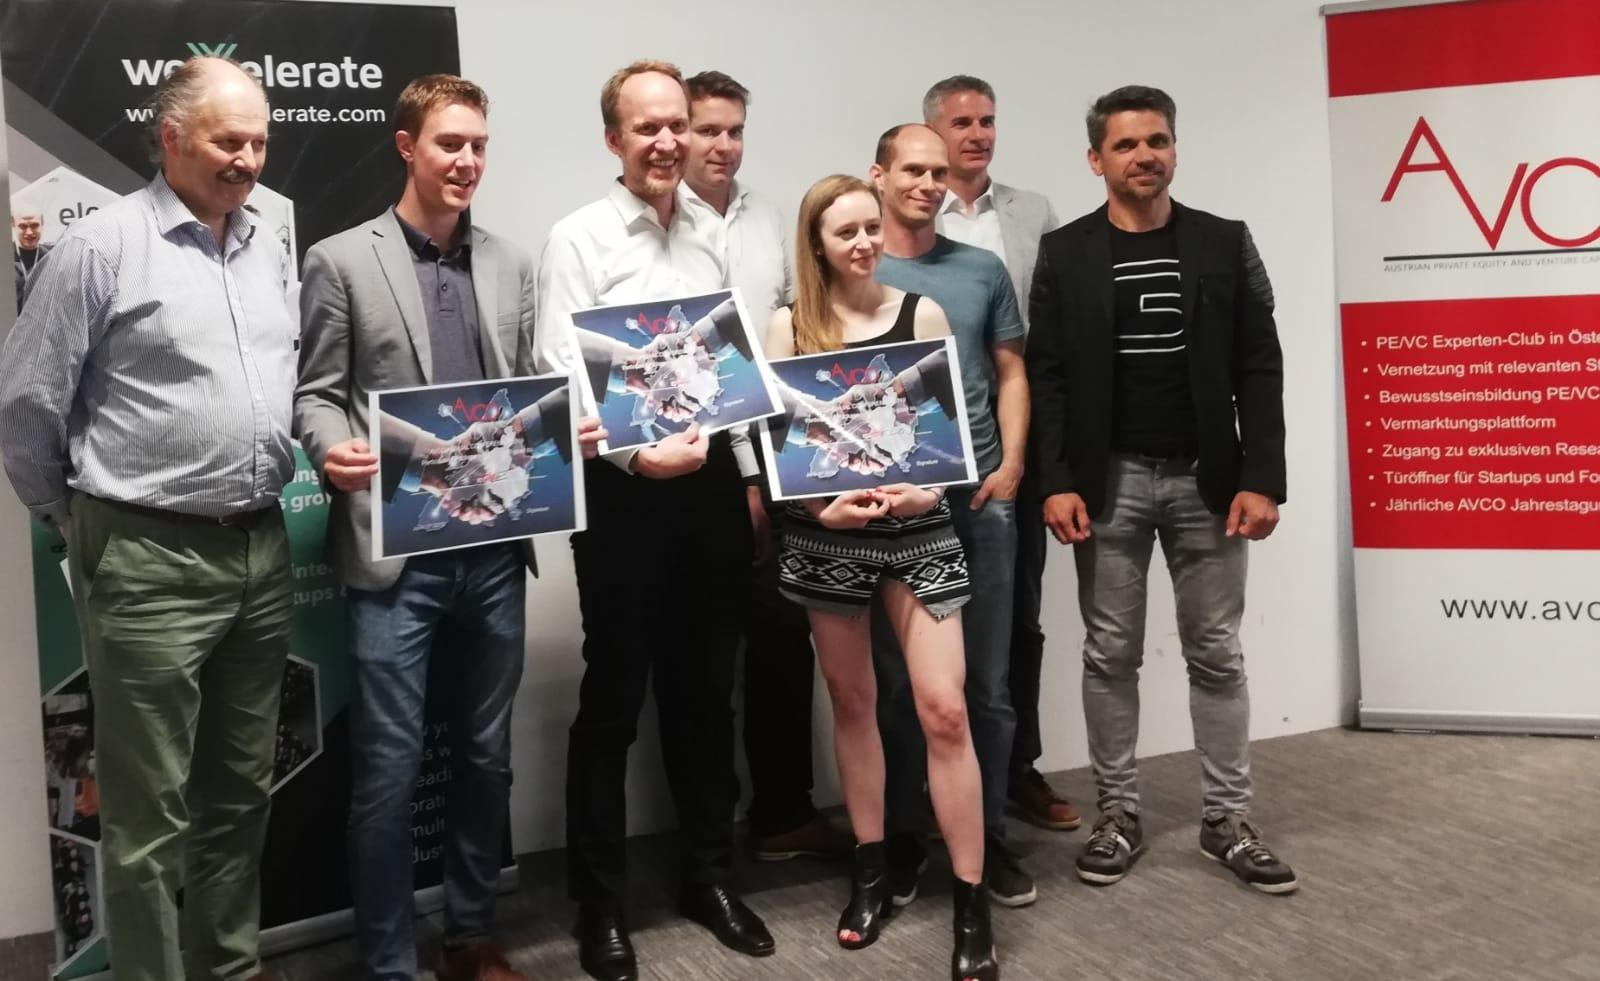 4tiitoo wins AVCO Selection Night @ weXelerate prewave